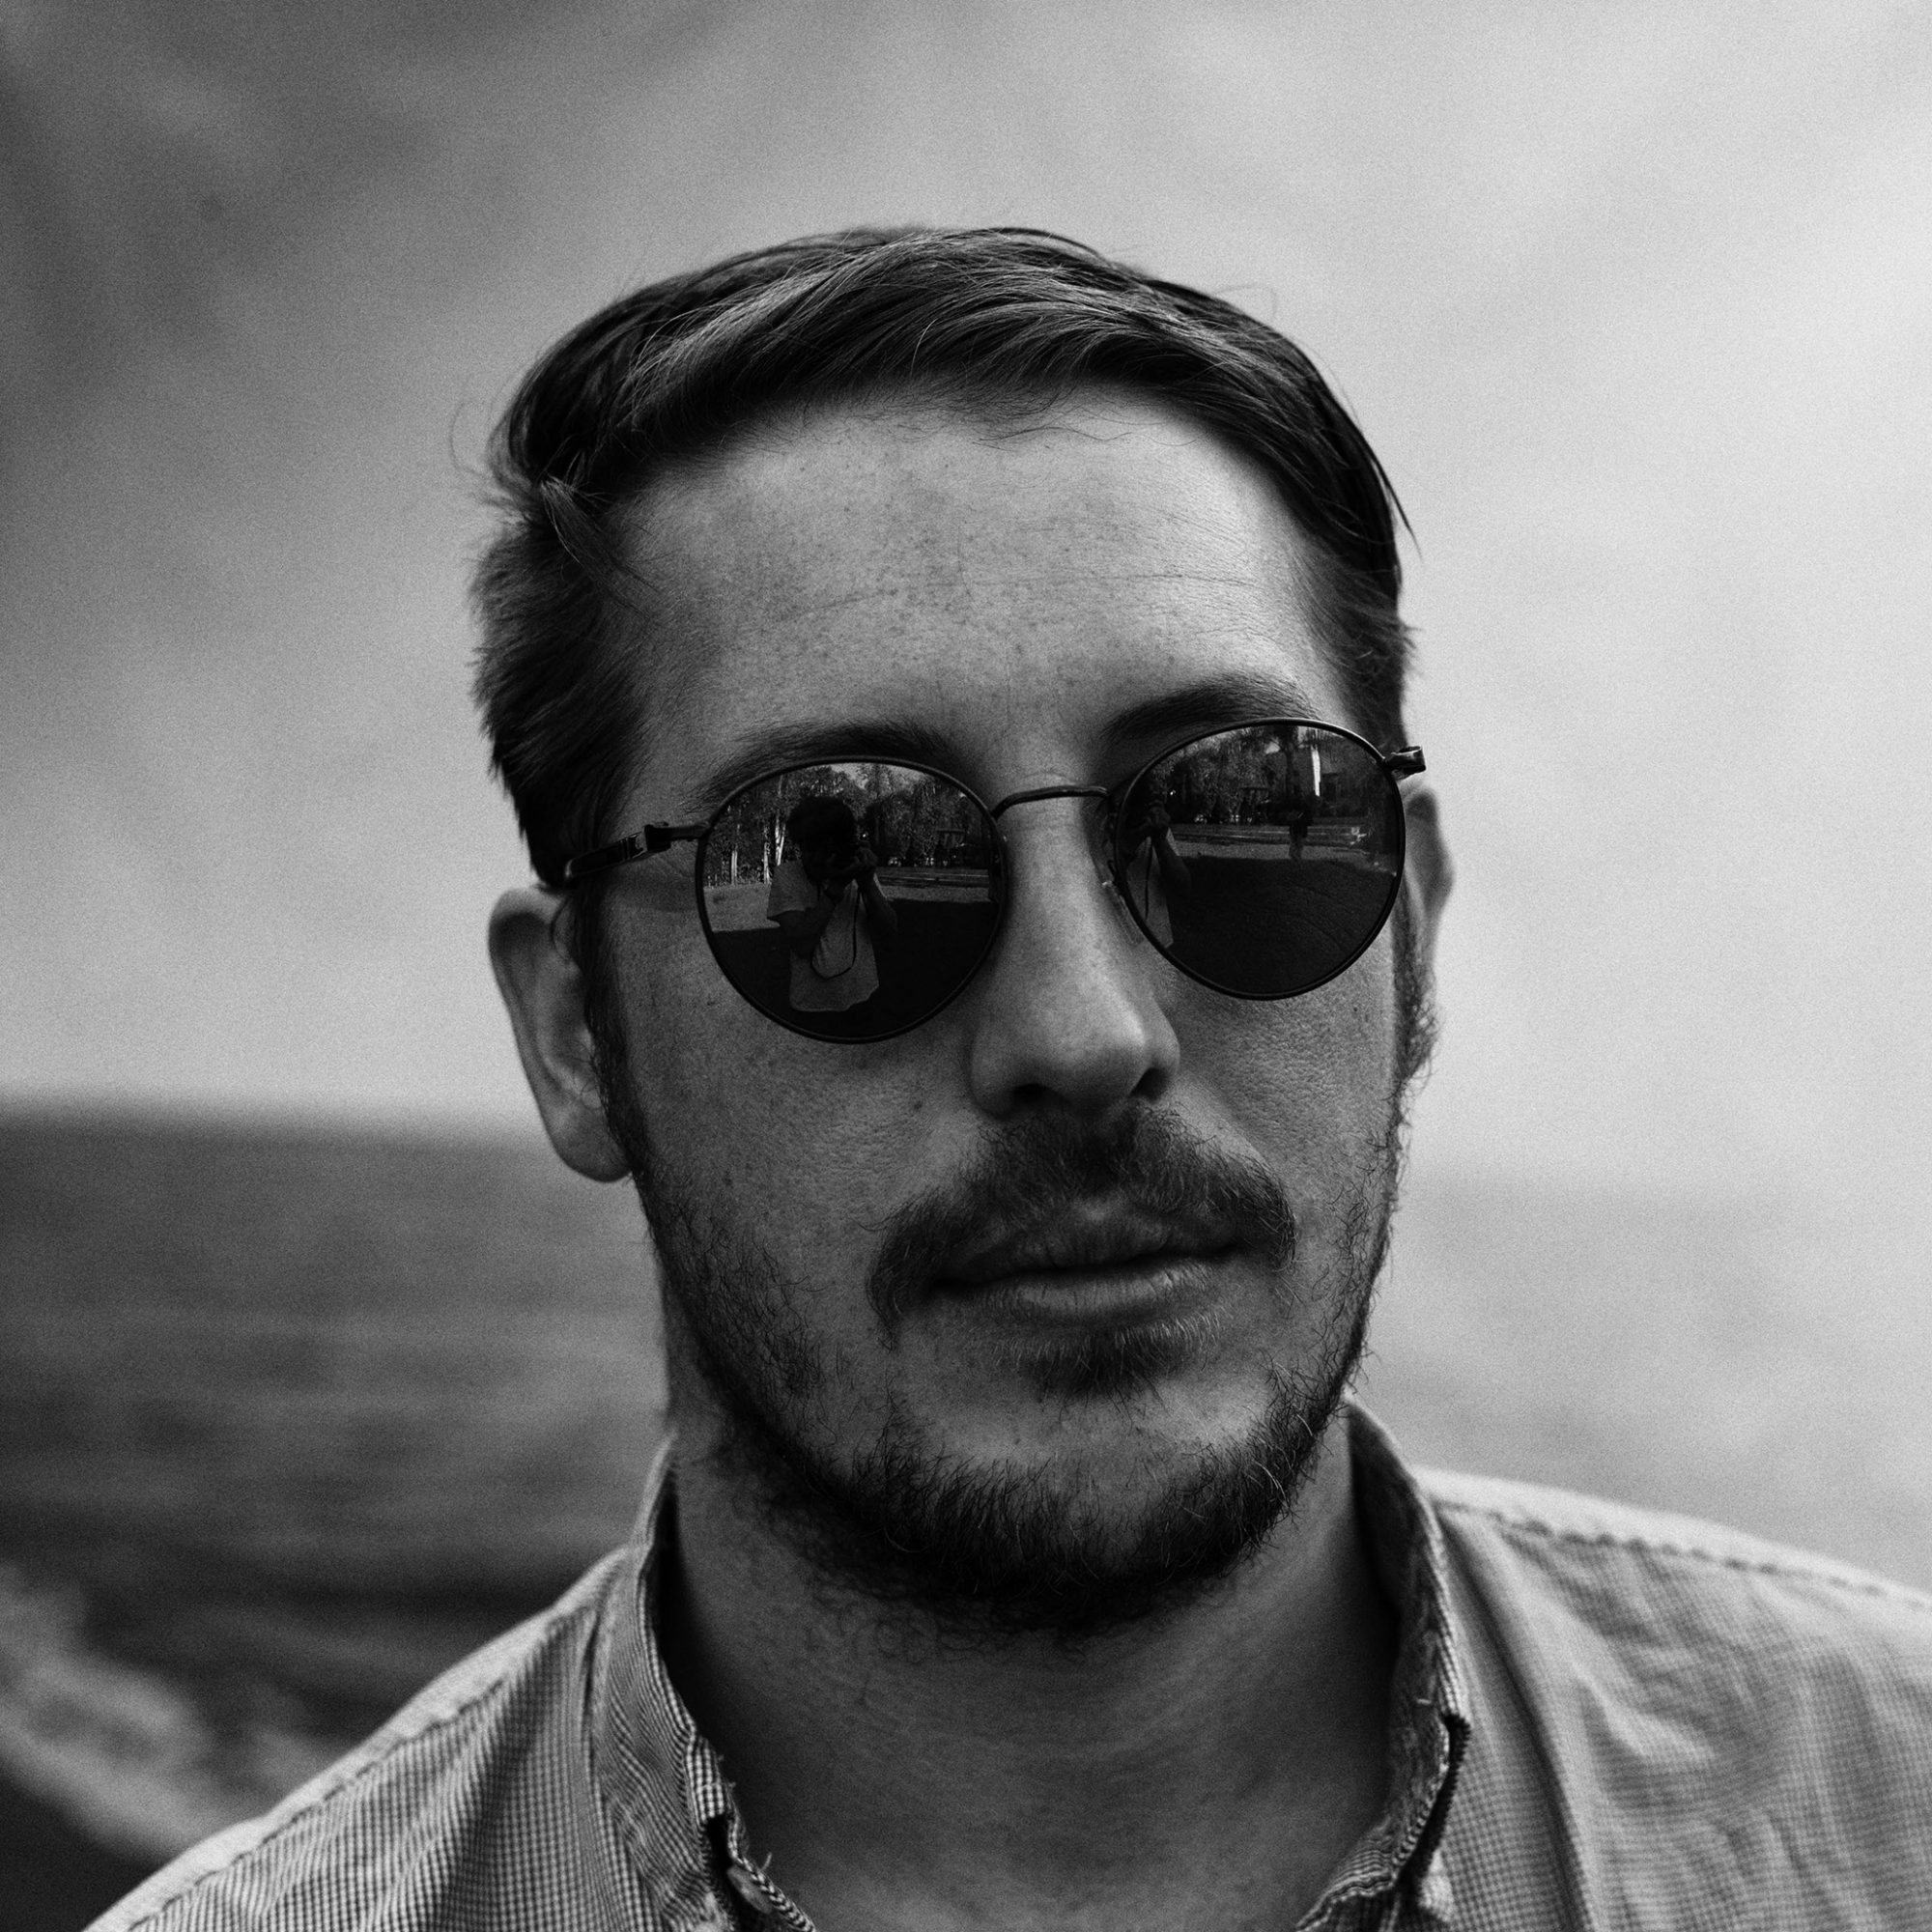 Zach Carothers, bassist for indie rock band Portugal. The Man